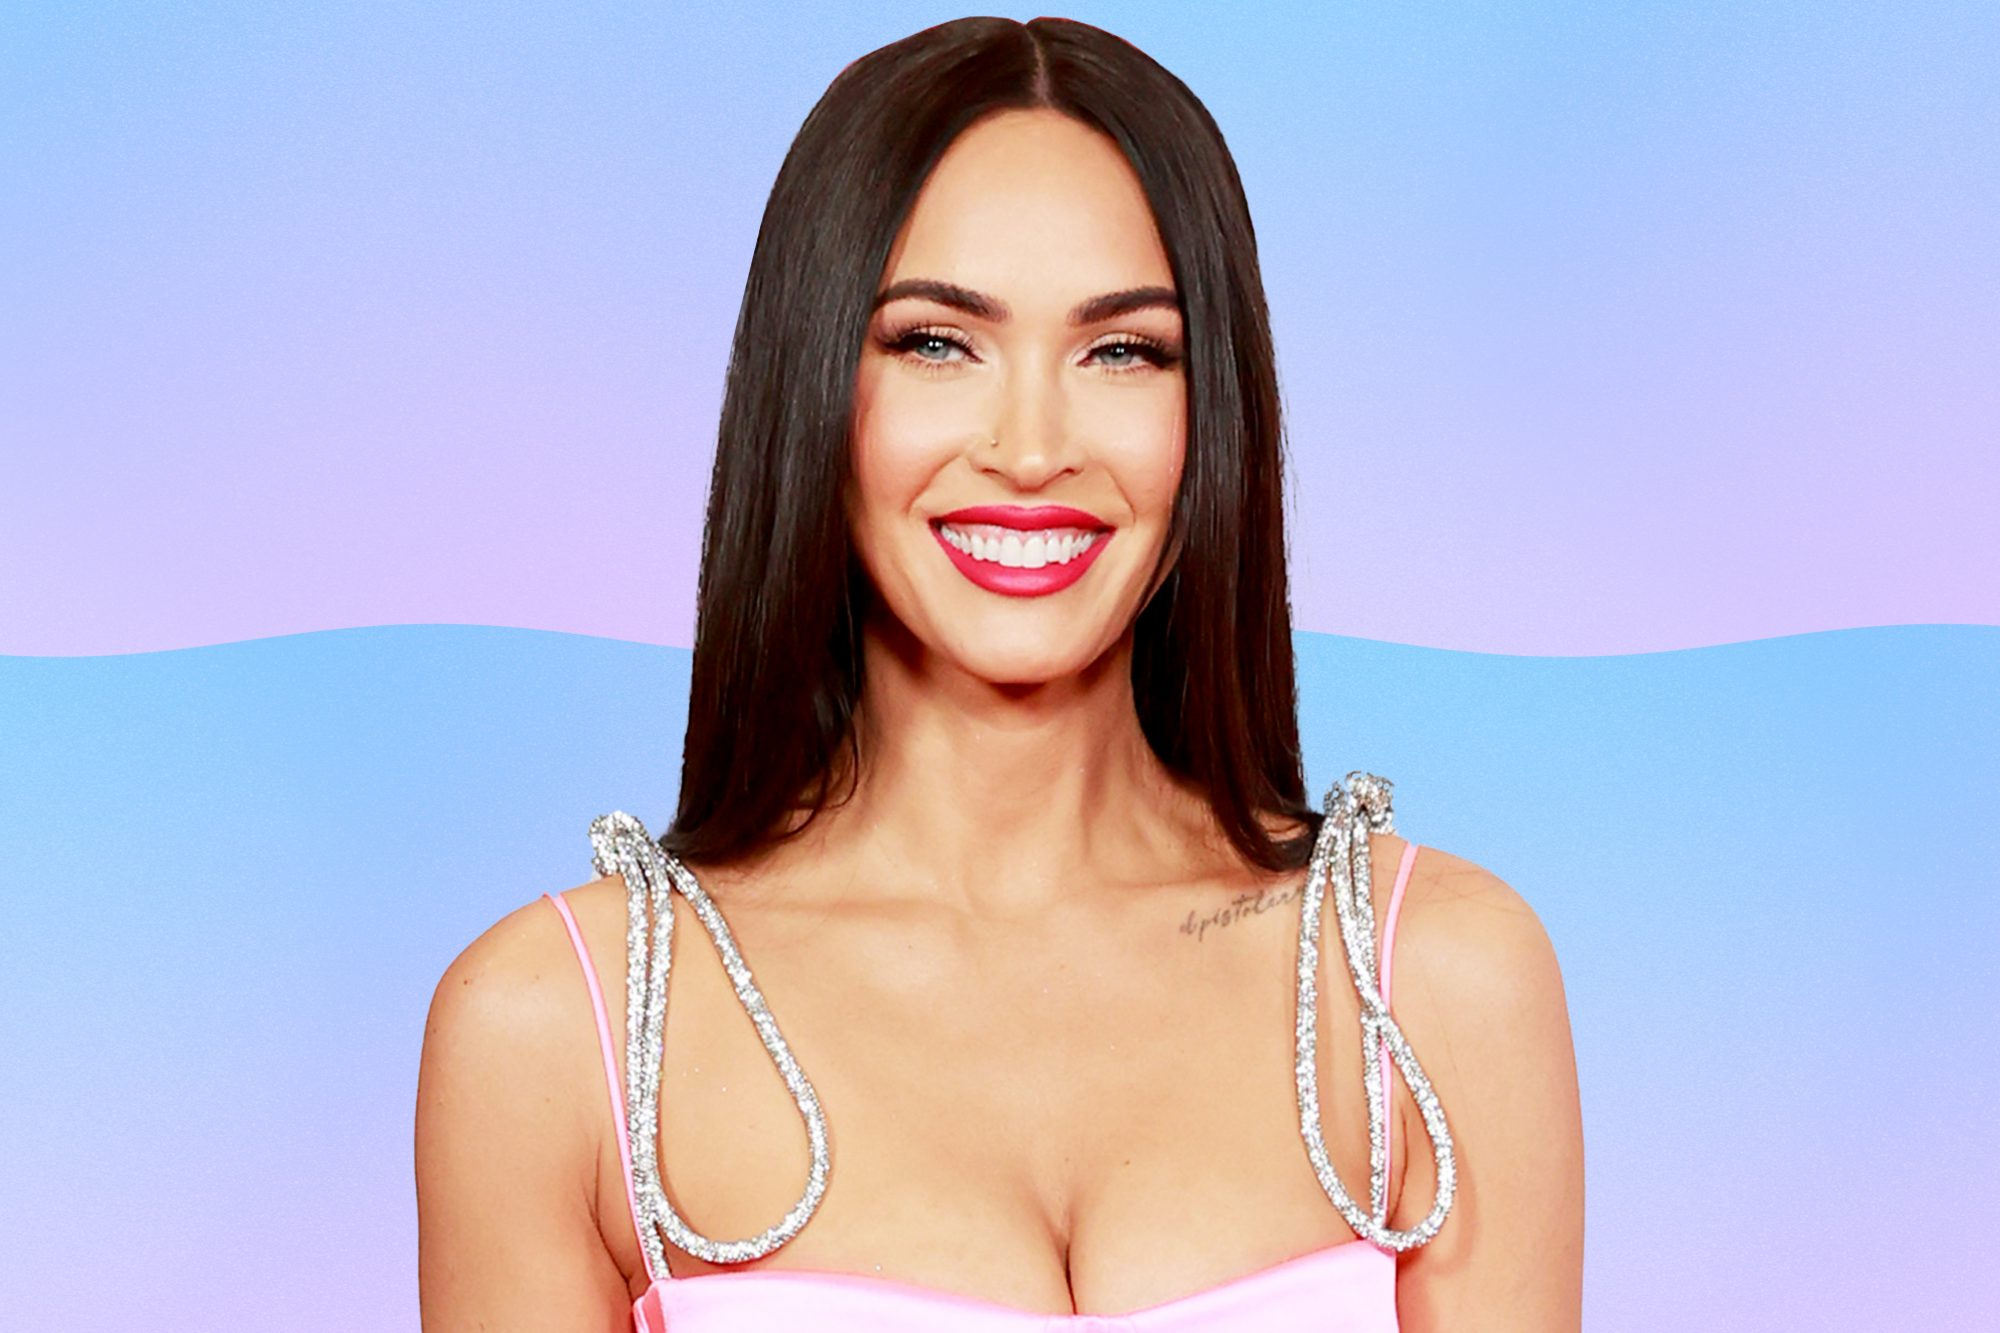 Reviewers-Say-Megan-Fox's-Favorite-$12-Moisturizer-Makes-You-Look-Like-a-Glowing-Healthy-Goddess-GettyImages-1320410358